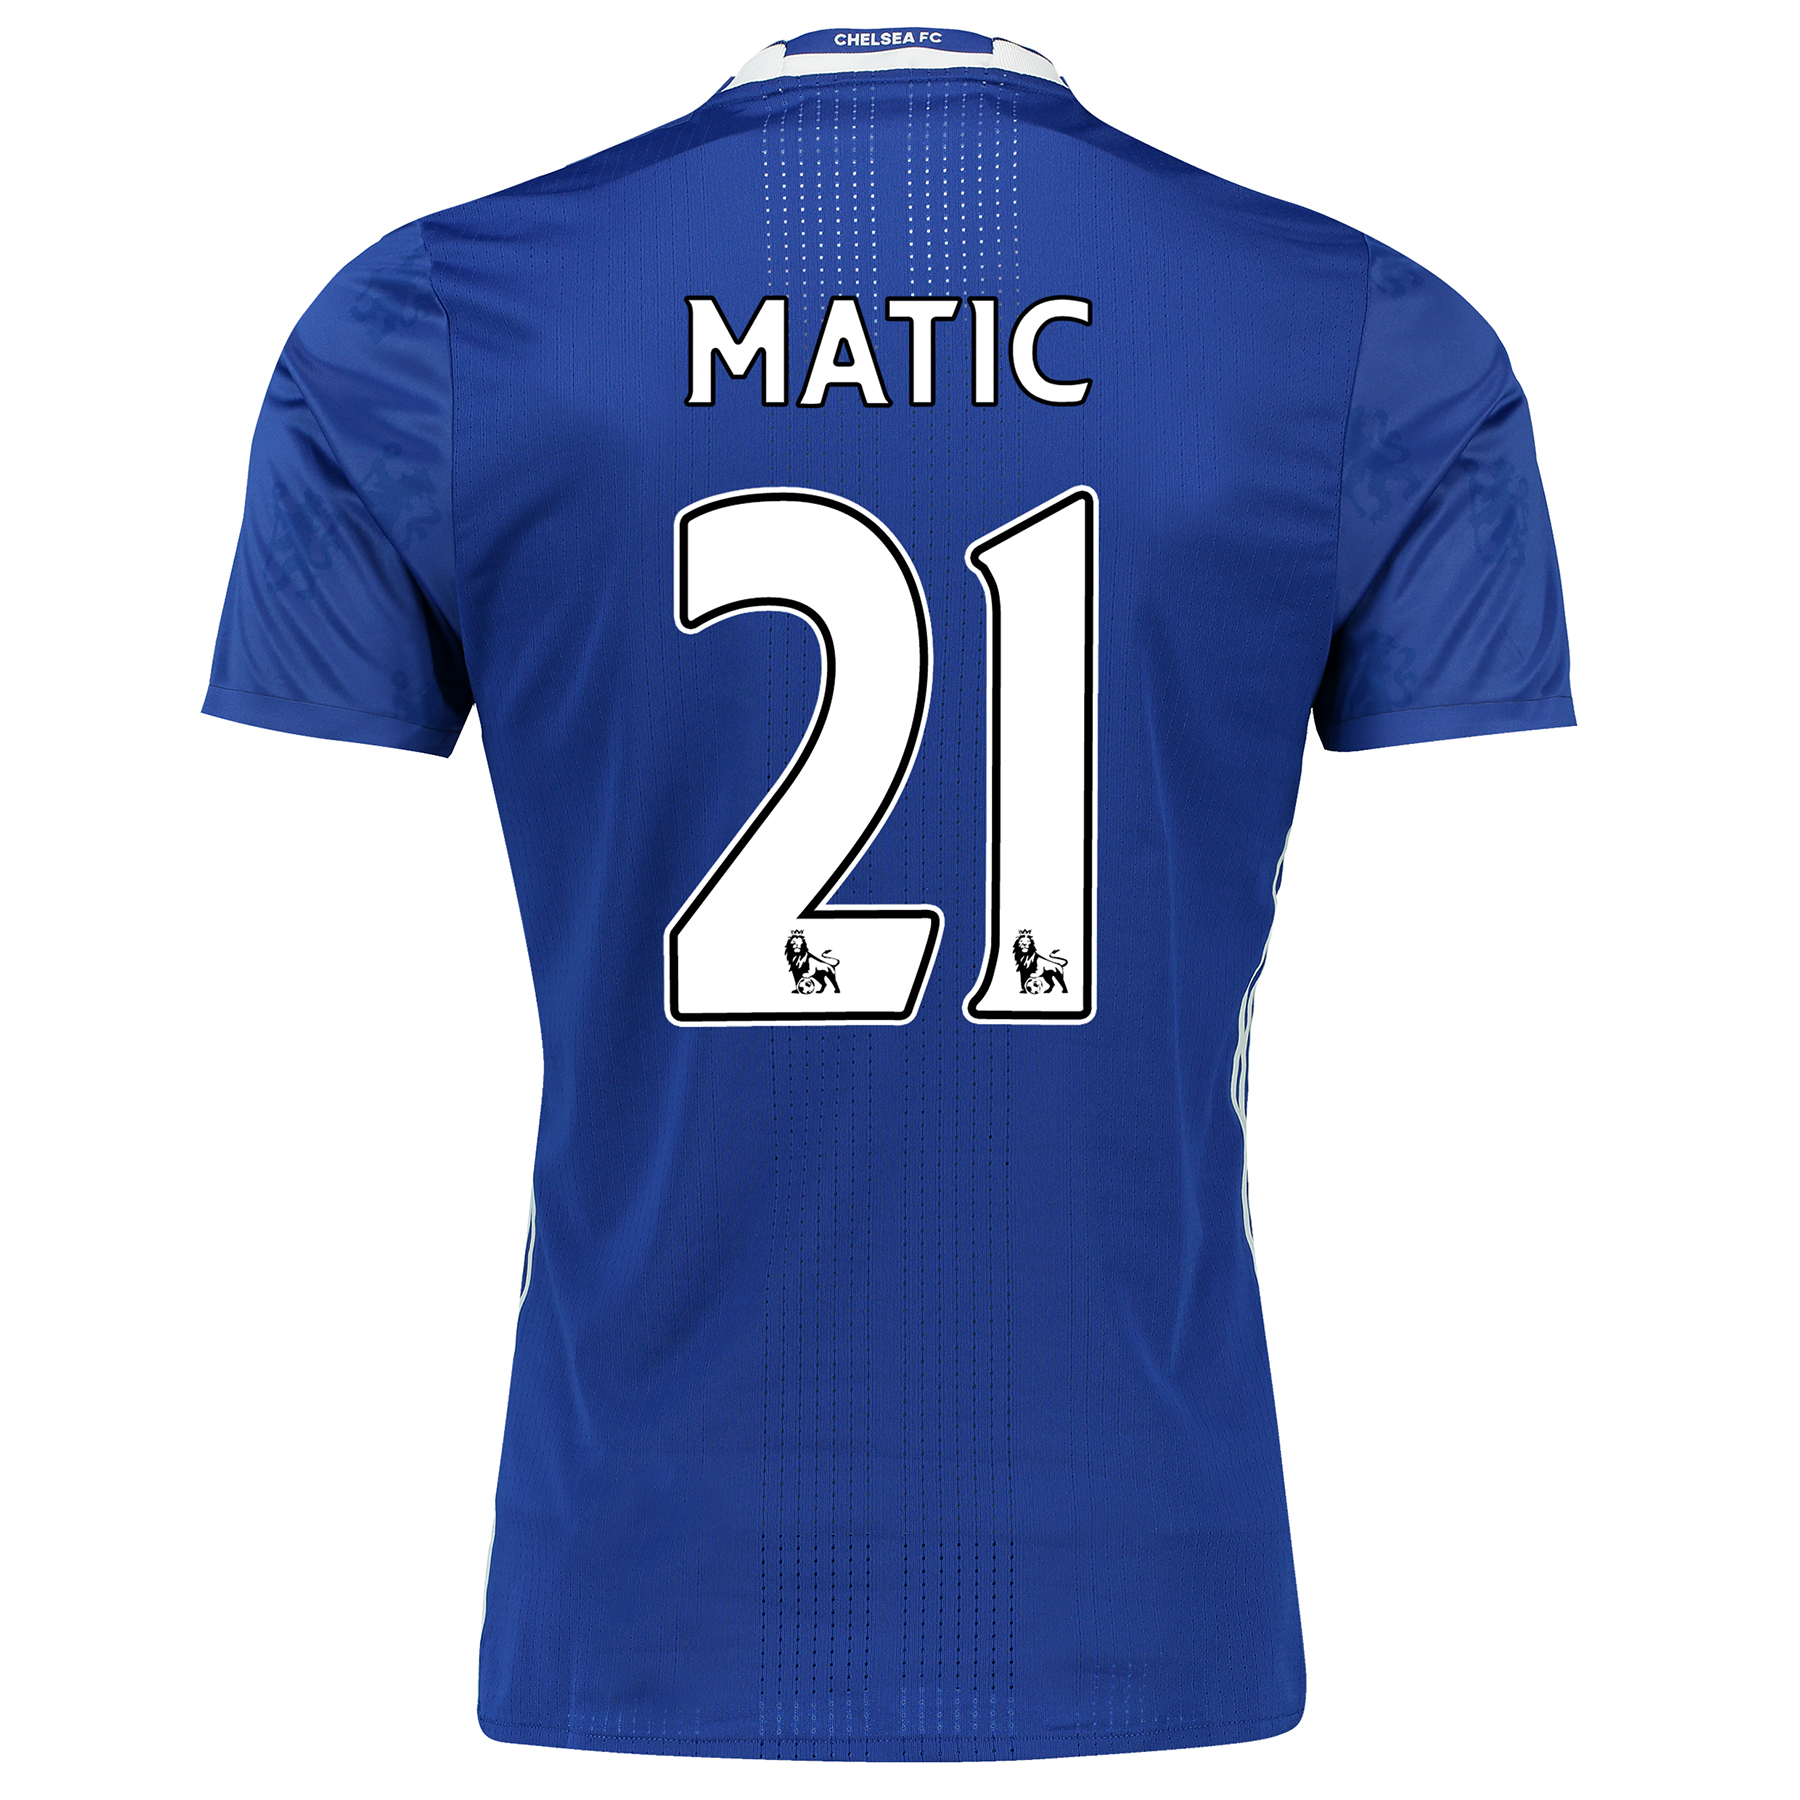 Shop Matic Printed Shirts